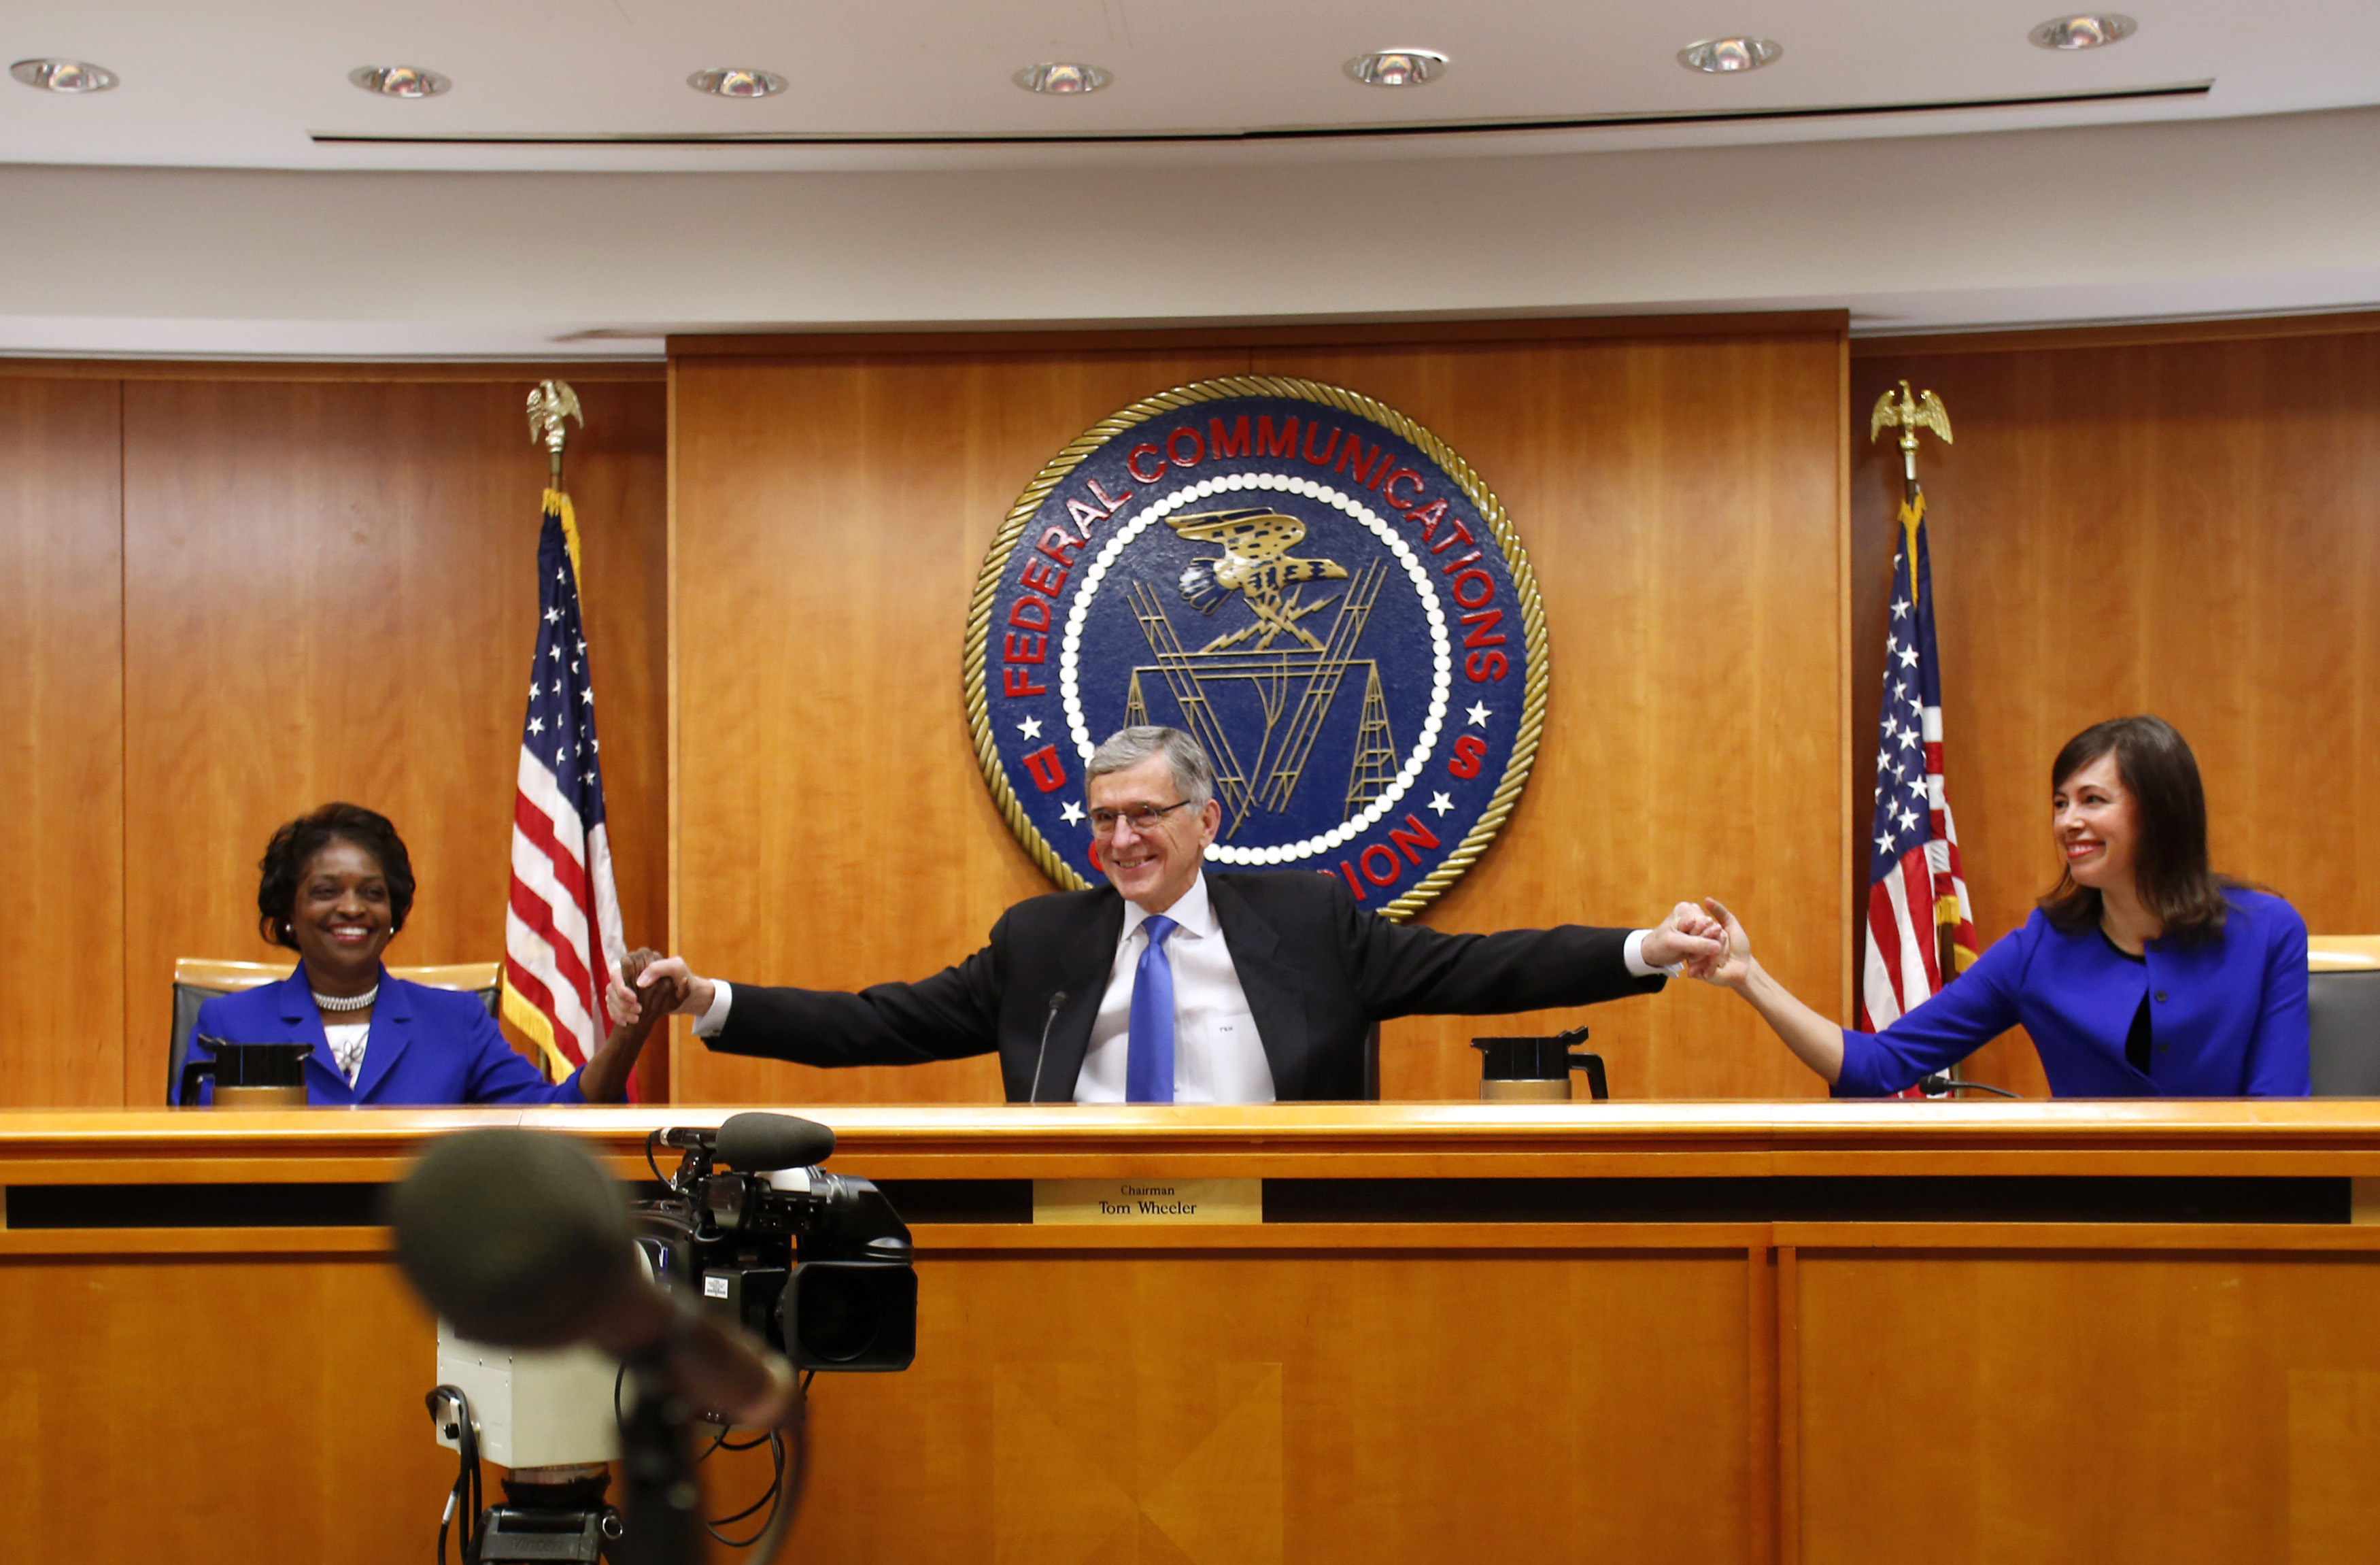 Federal Communications Commission (FCC) Chairman Tom Wheeler (C) greets Democratic commissioners Mignon Clyburn (L) and Jessica Rosenworcel at the FCC Net Neutrality hearing in Washington February 26, 2015. [REUTERS/Yuri Gripas]